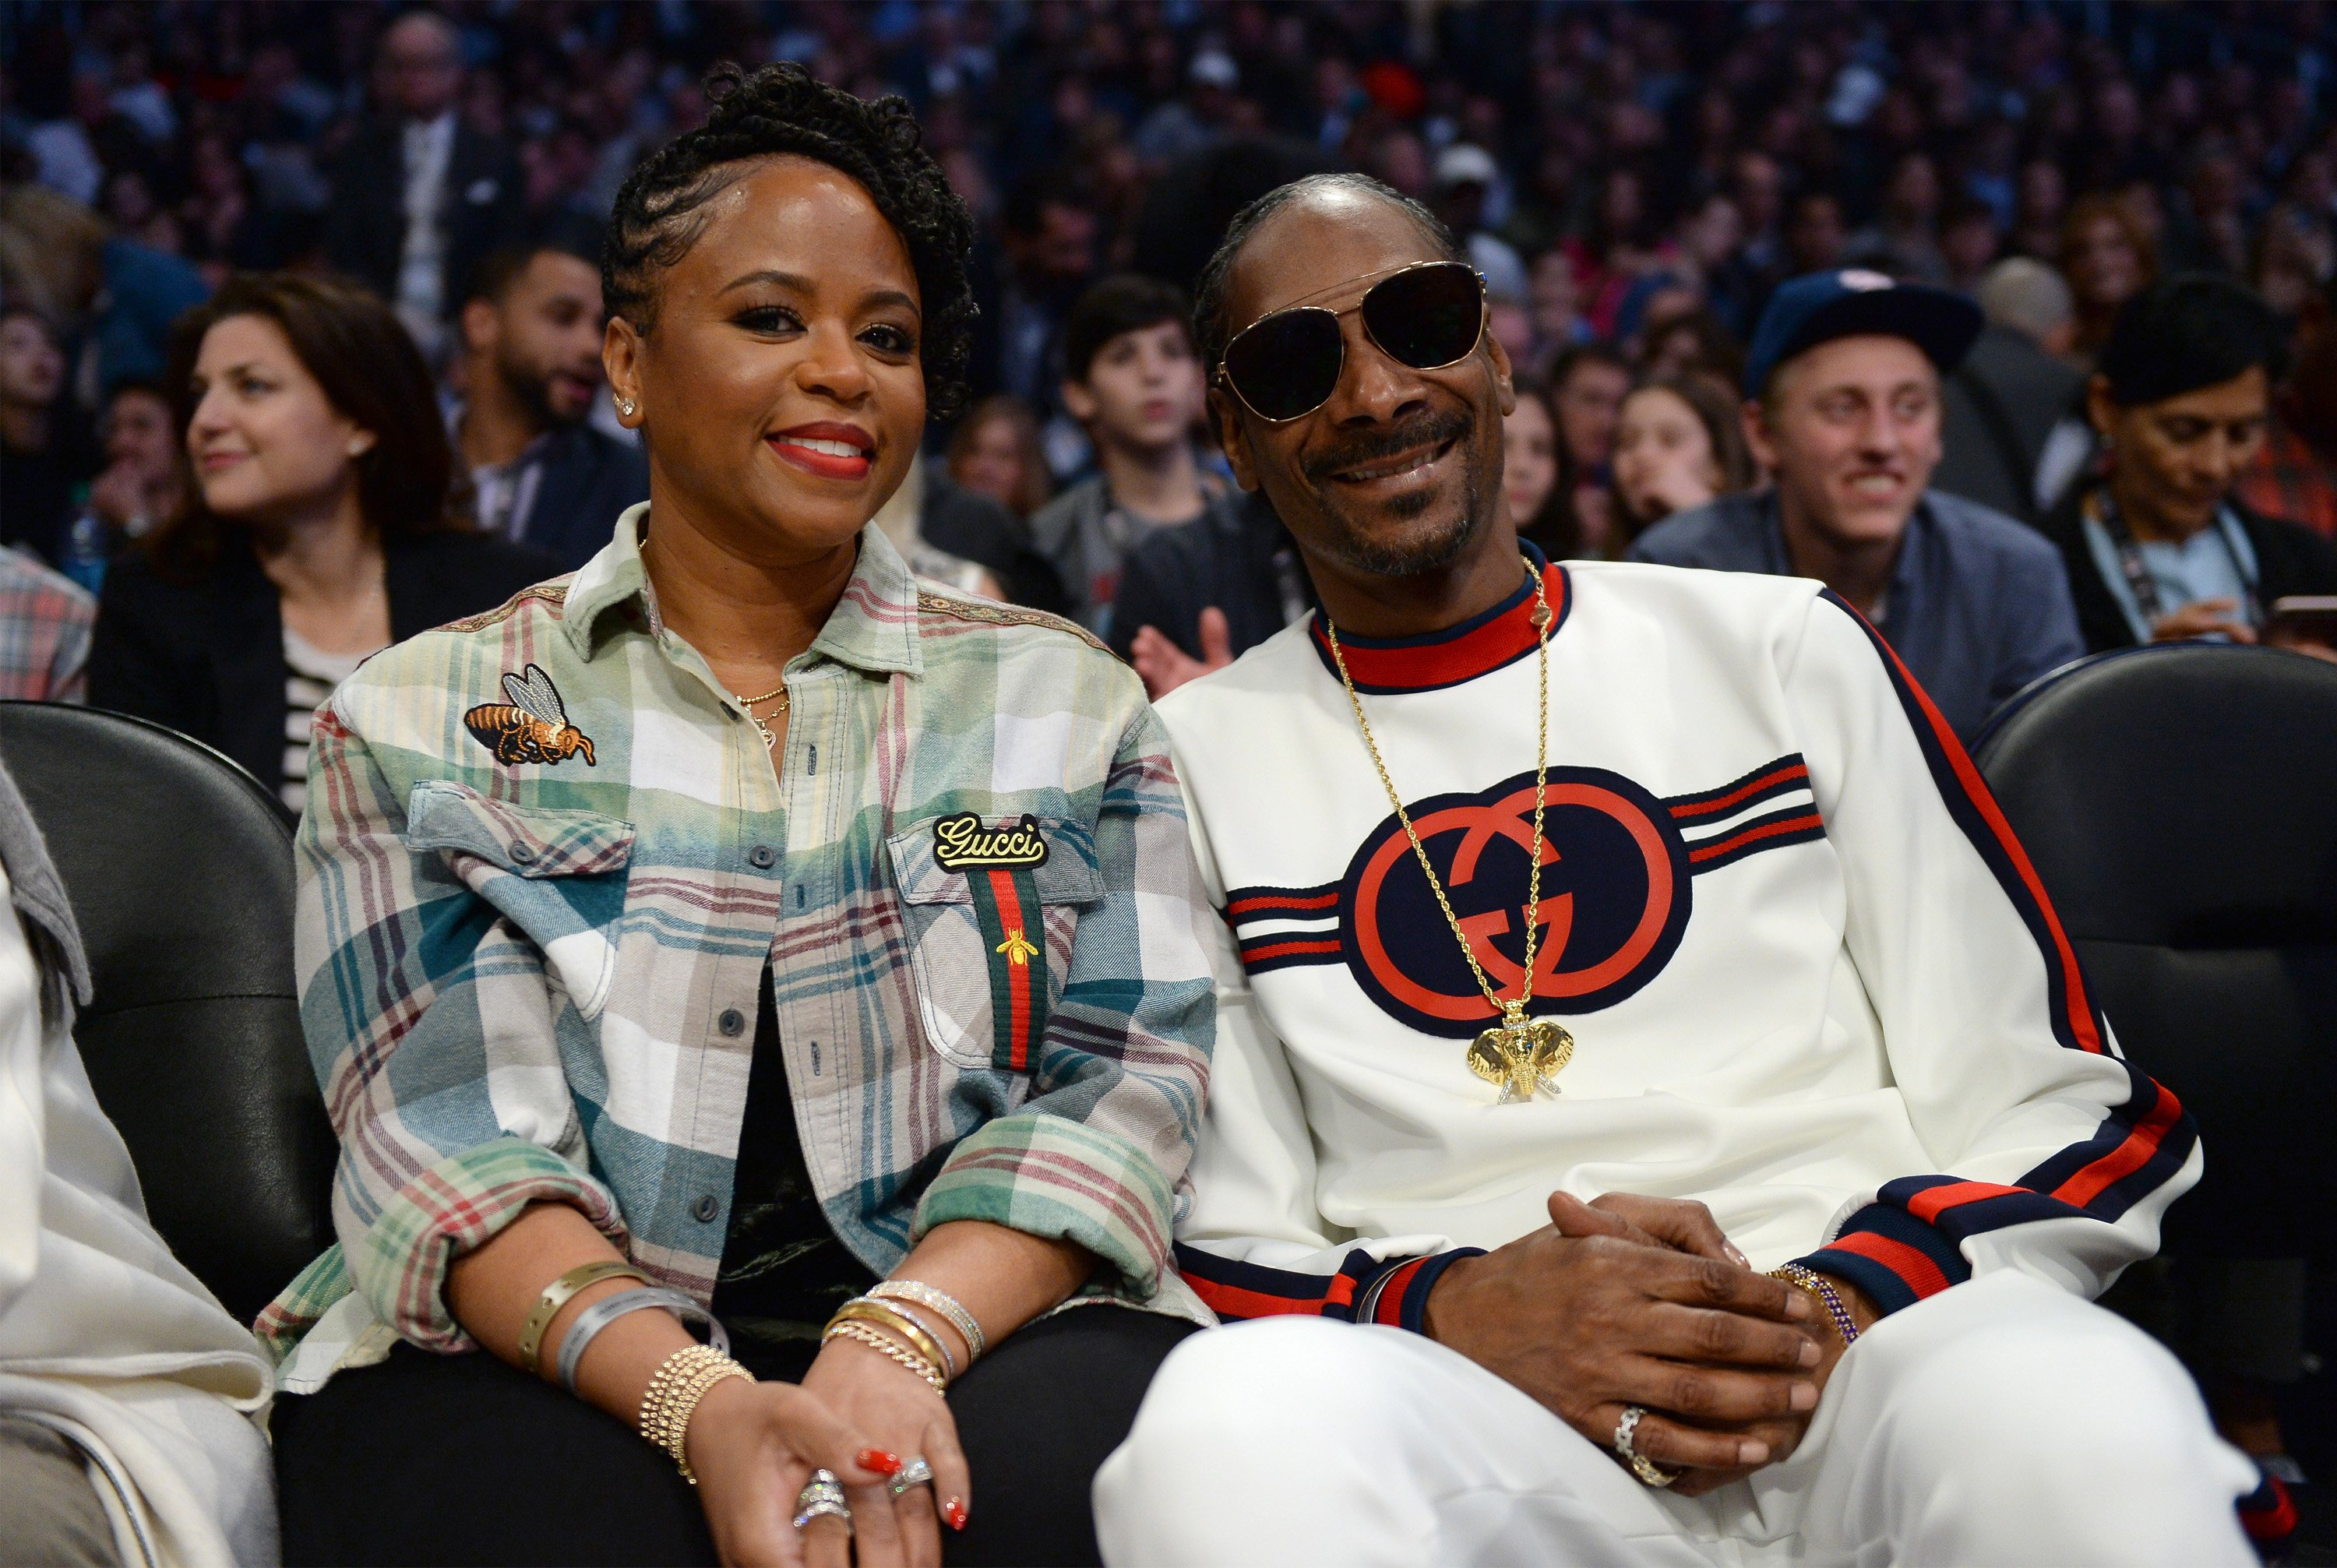 Snoop Dogg and wife Shante attend the NBA All-Star Game 2018 at Staples Center on February 18, 2018, | Photo: GettyImages